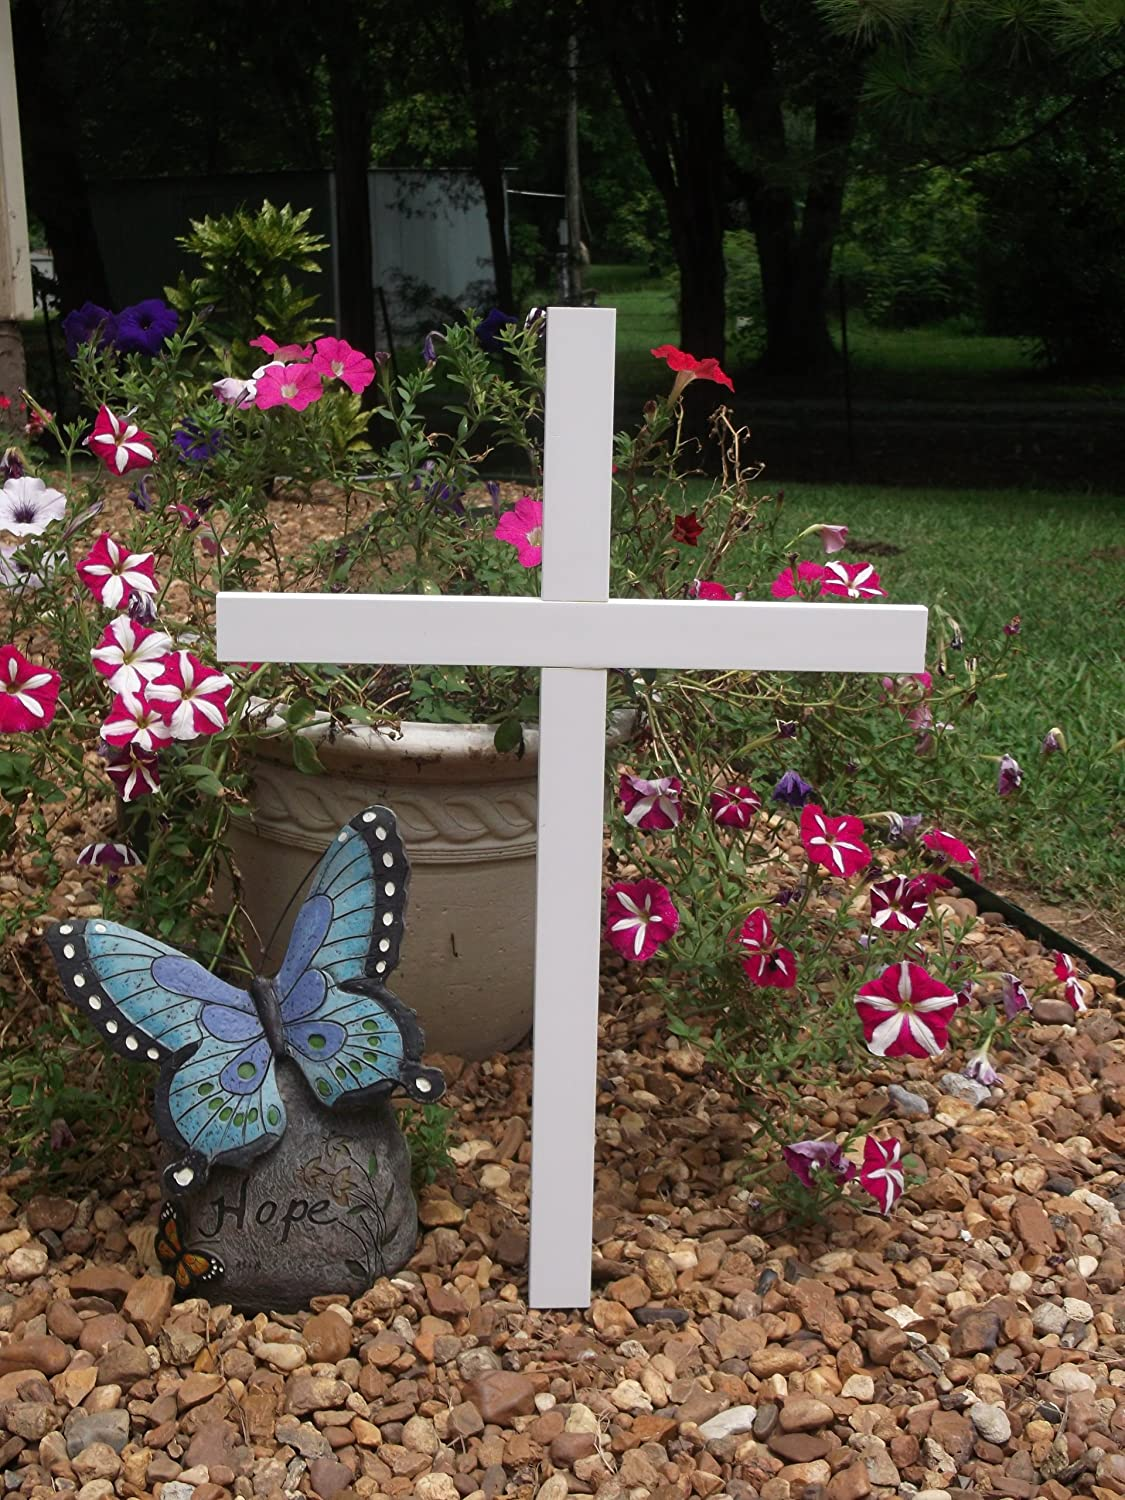 Amazon.com : Easter White Cross Garden Cross Outdoor Cross Yard ...